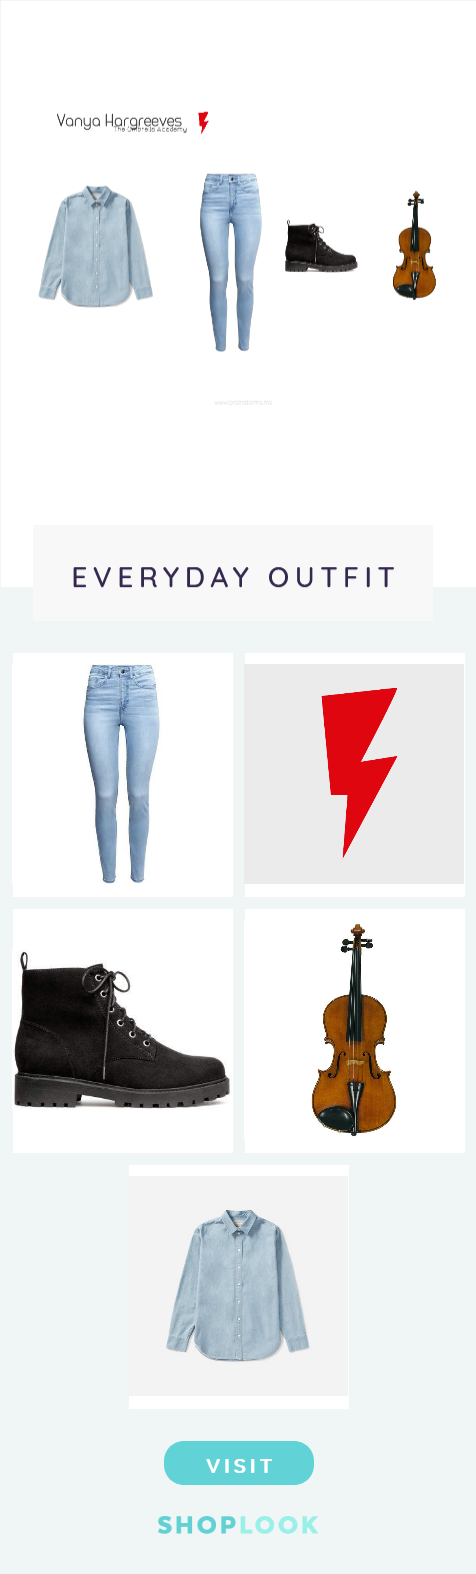 Vanya Hargreeves Cosplay Everyday Outfits Outfits Fashion